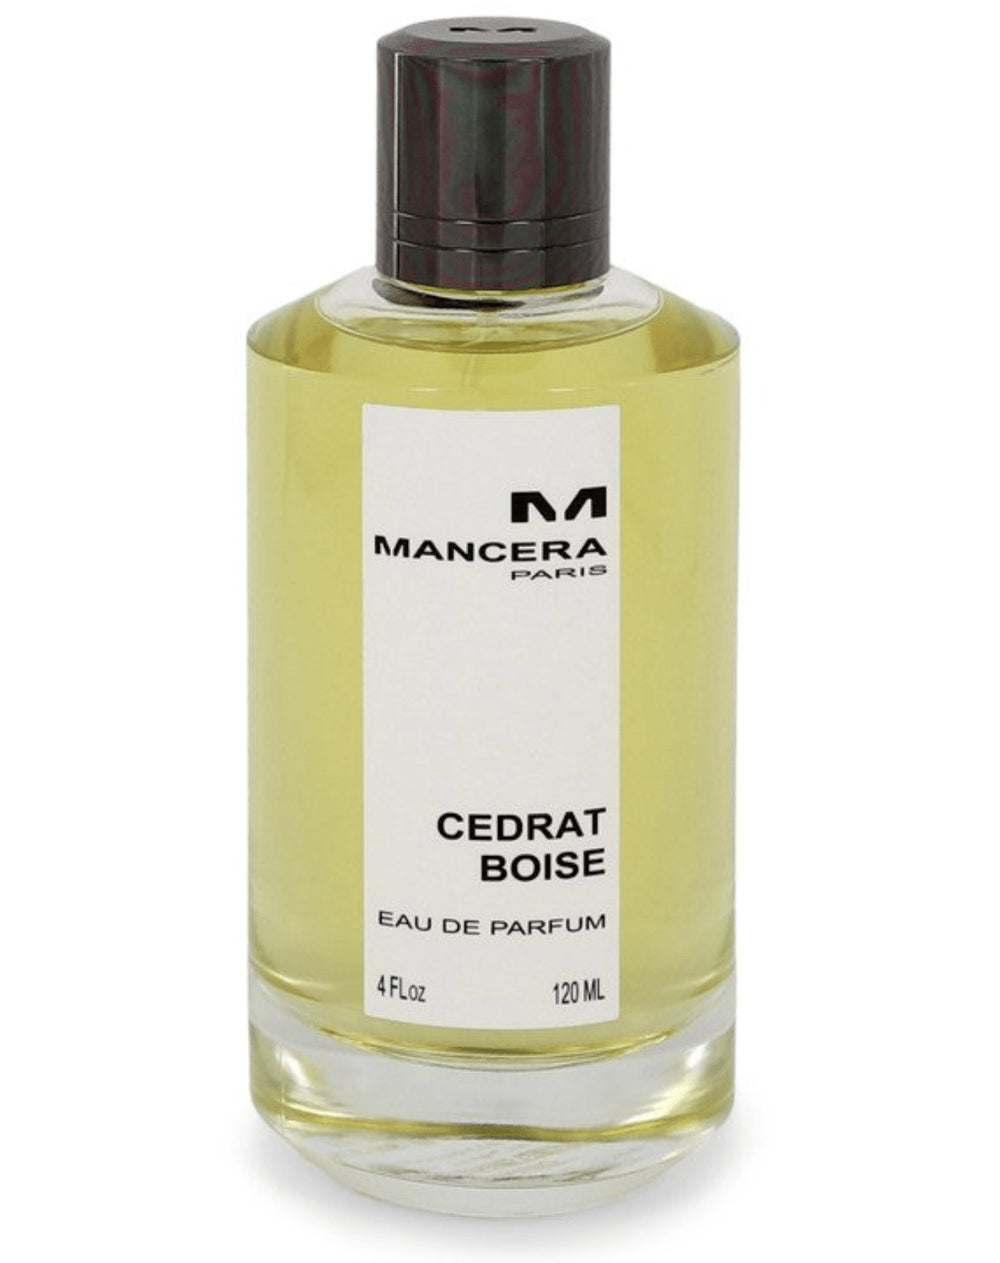 Cedrat Boise by Mancera Paris